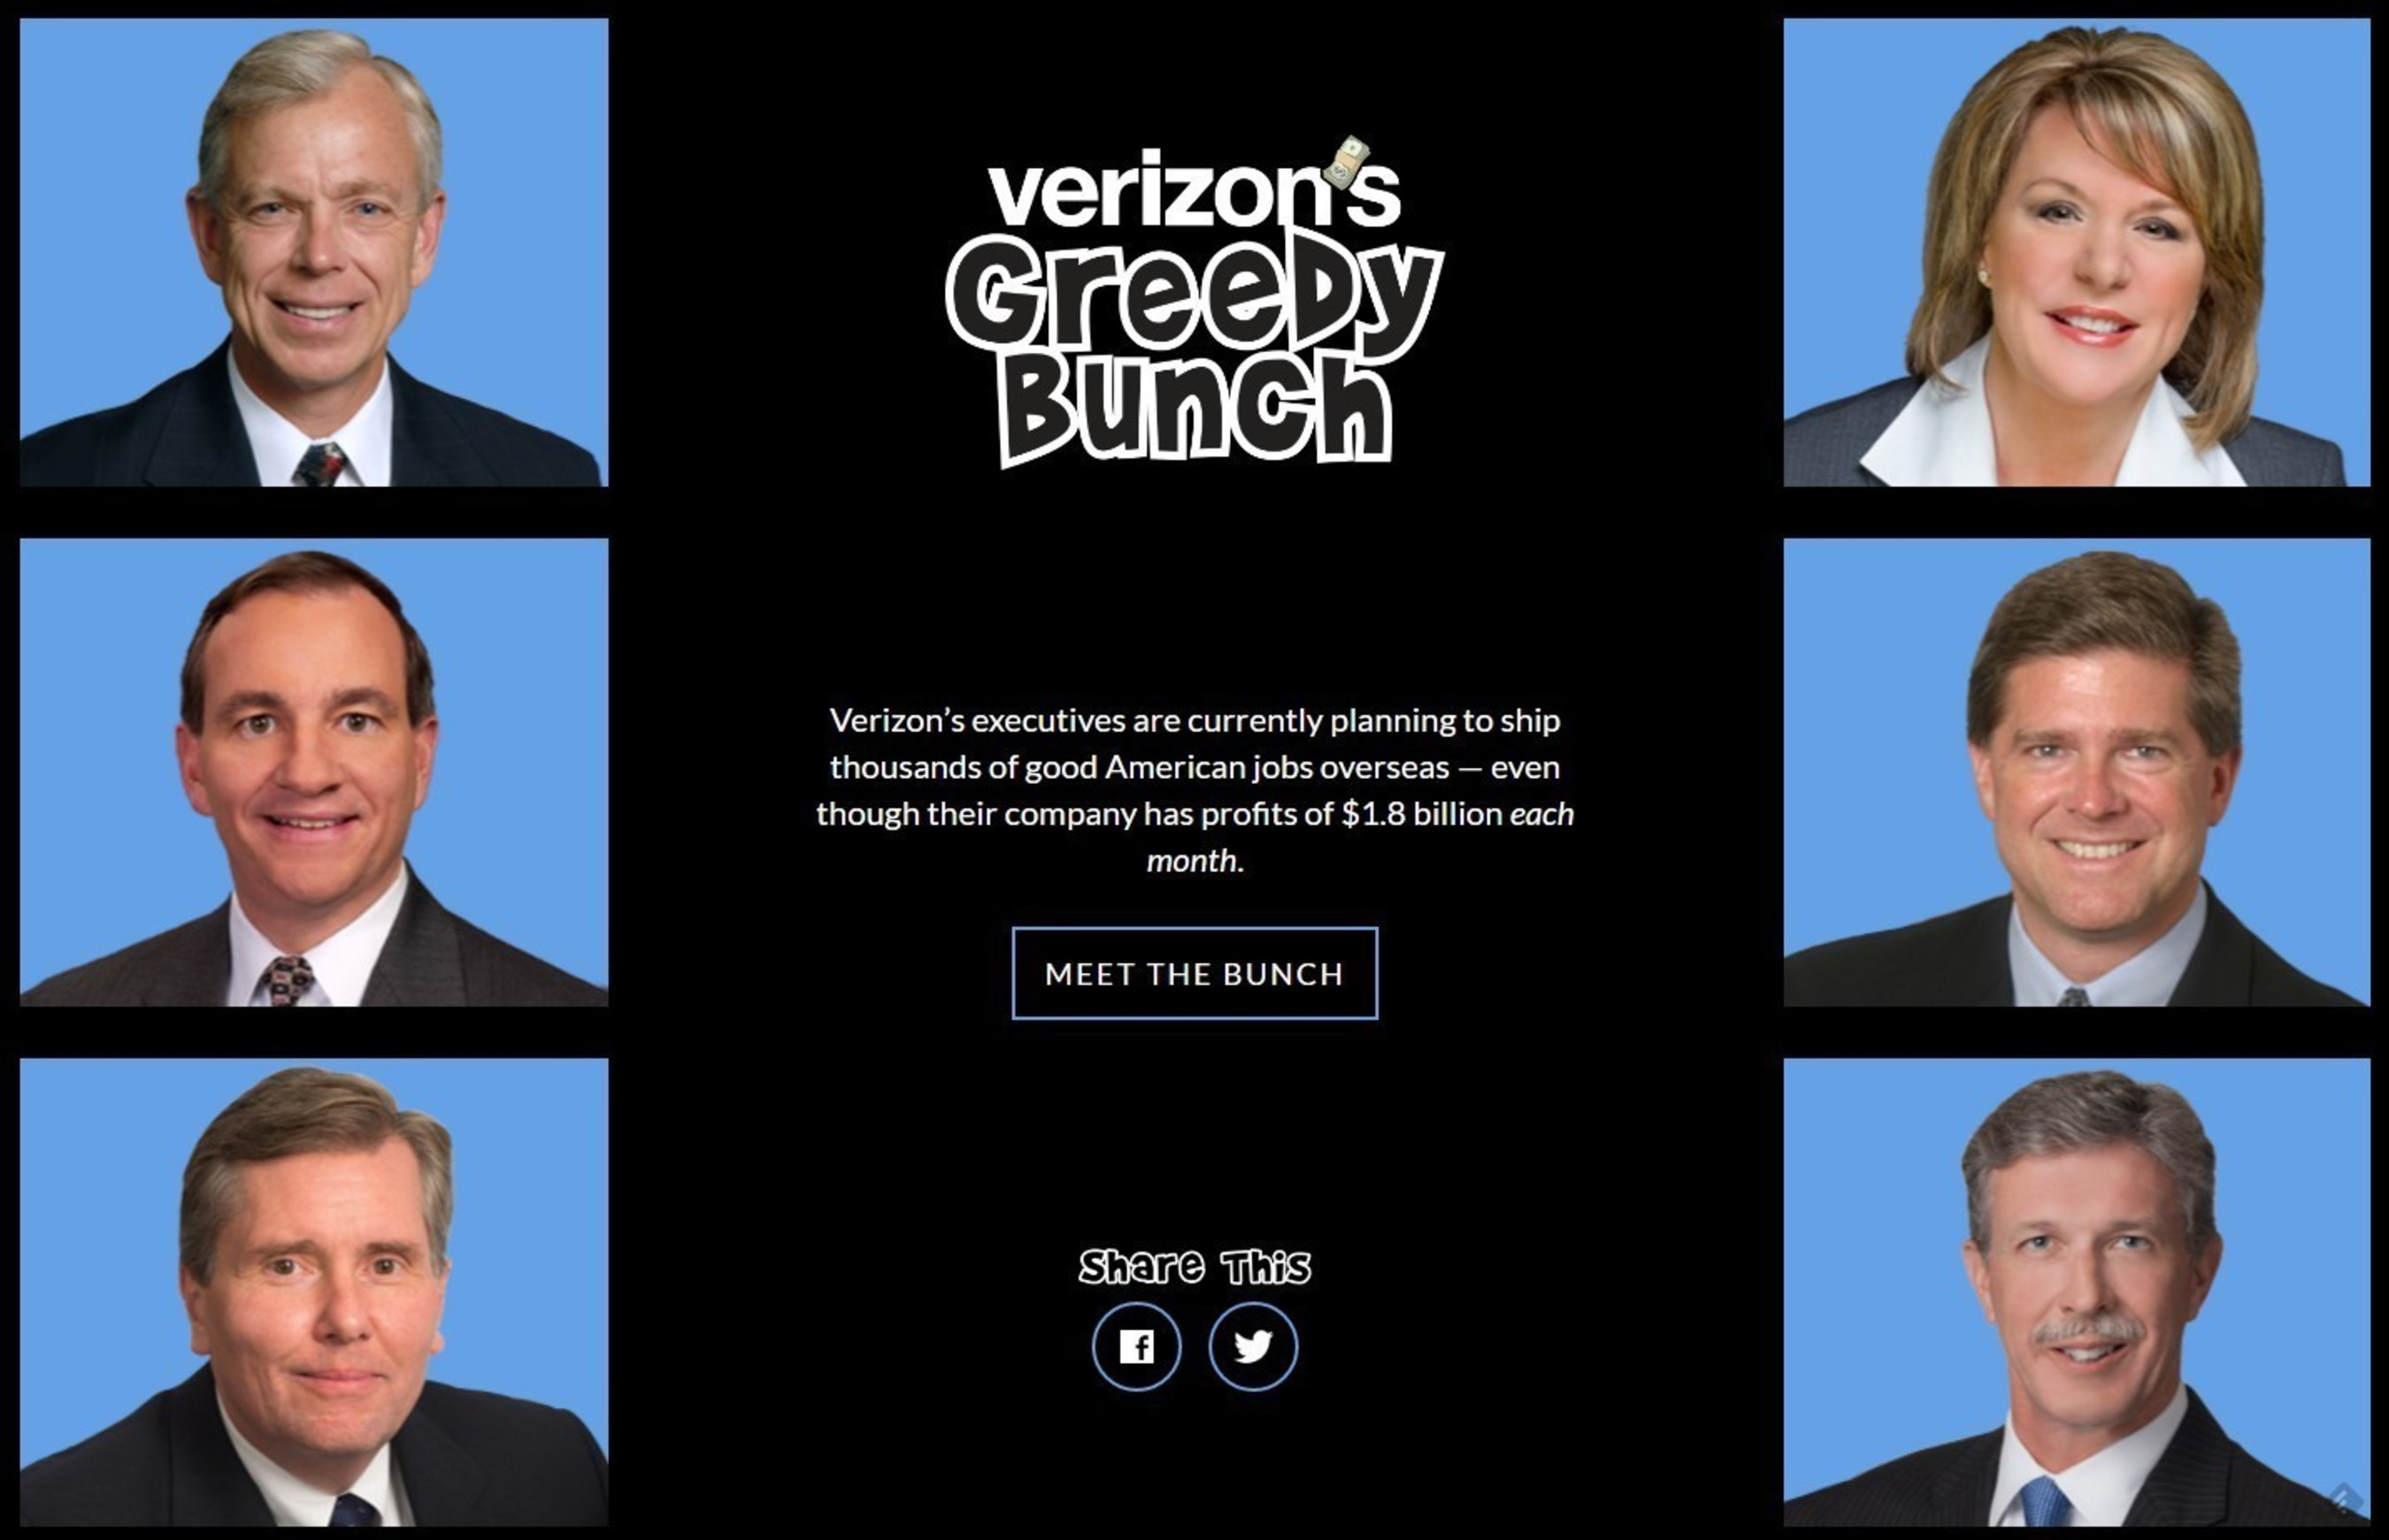 CWA Launches VerizonGreed.com As Verizon Moves to Cut Off Benefits for 100K Workers, Family Members